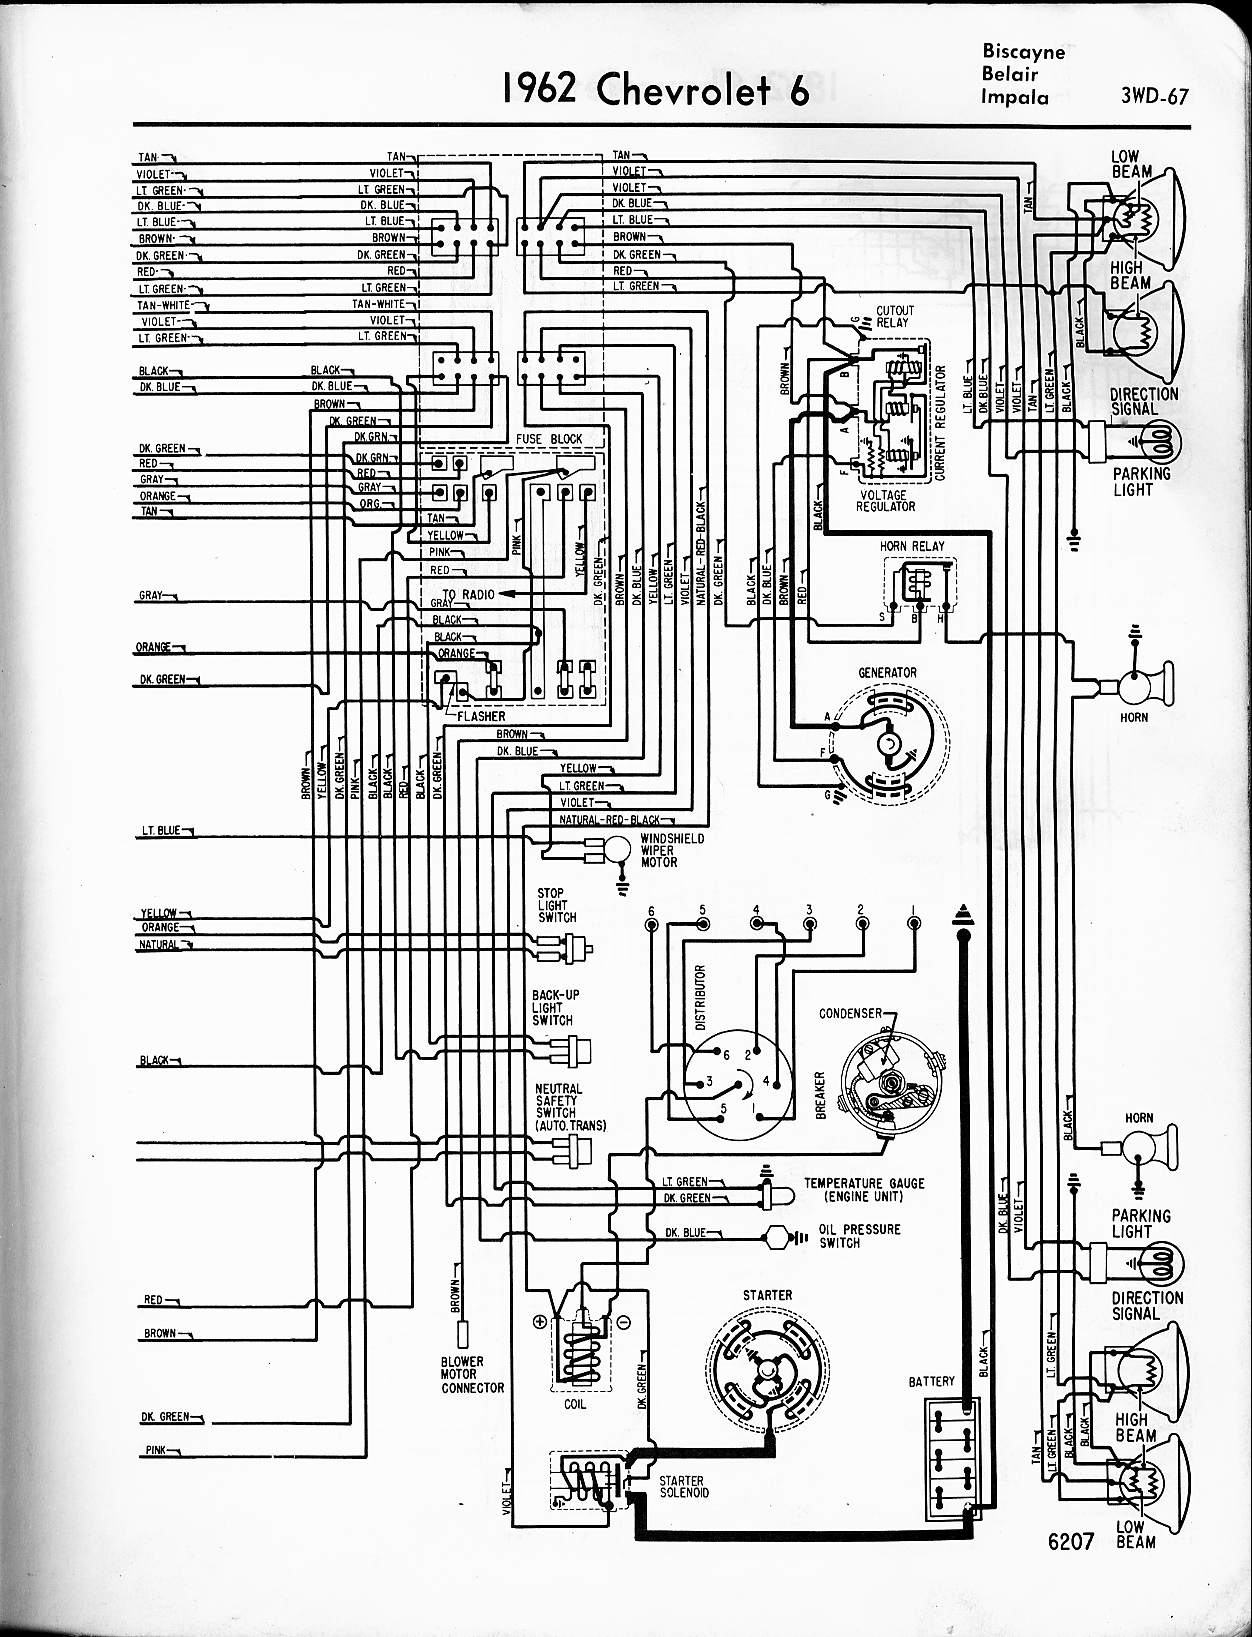 1962 impala voltage regulator wiring diagram 65 impala wiring diagram at w freeautoresponder